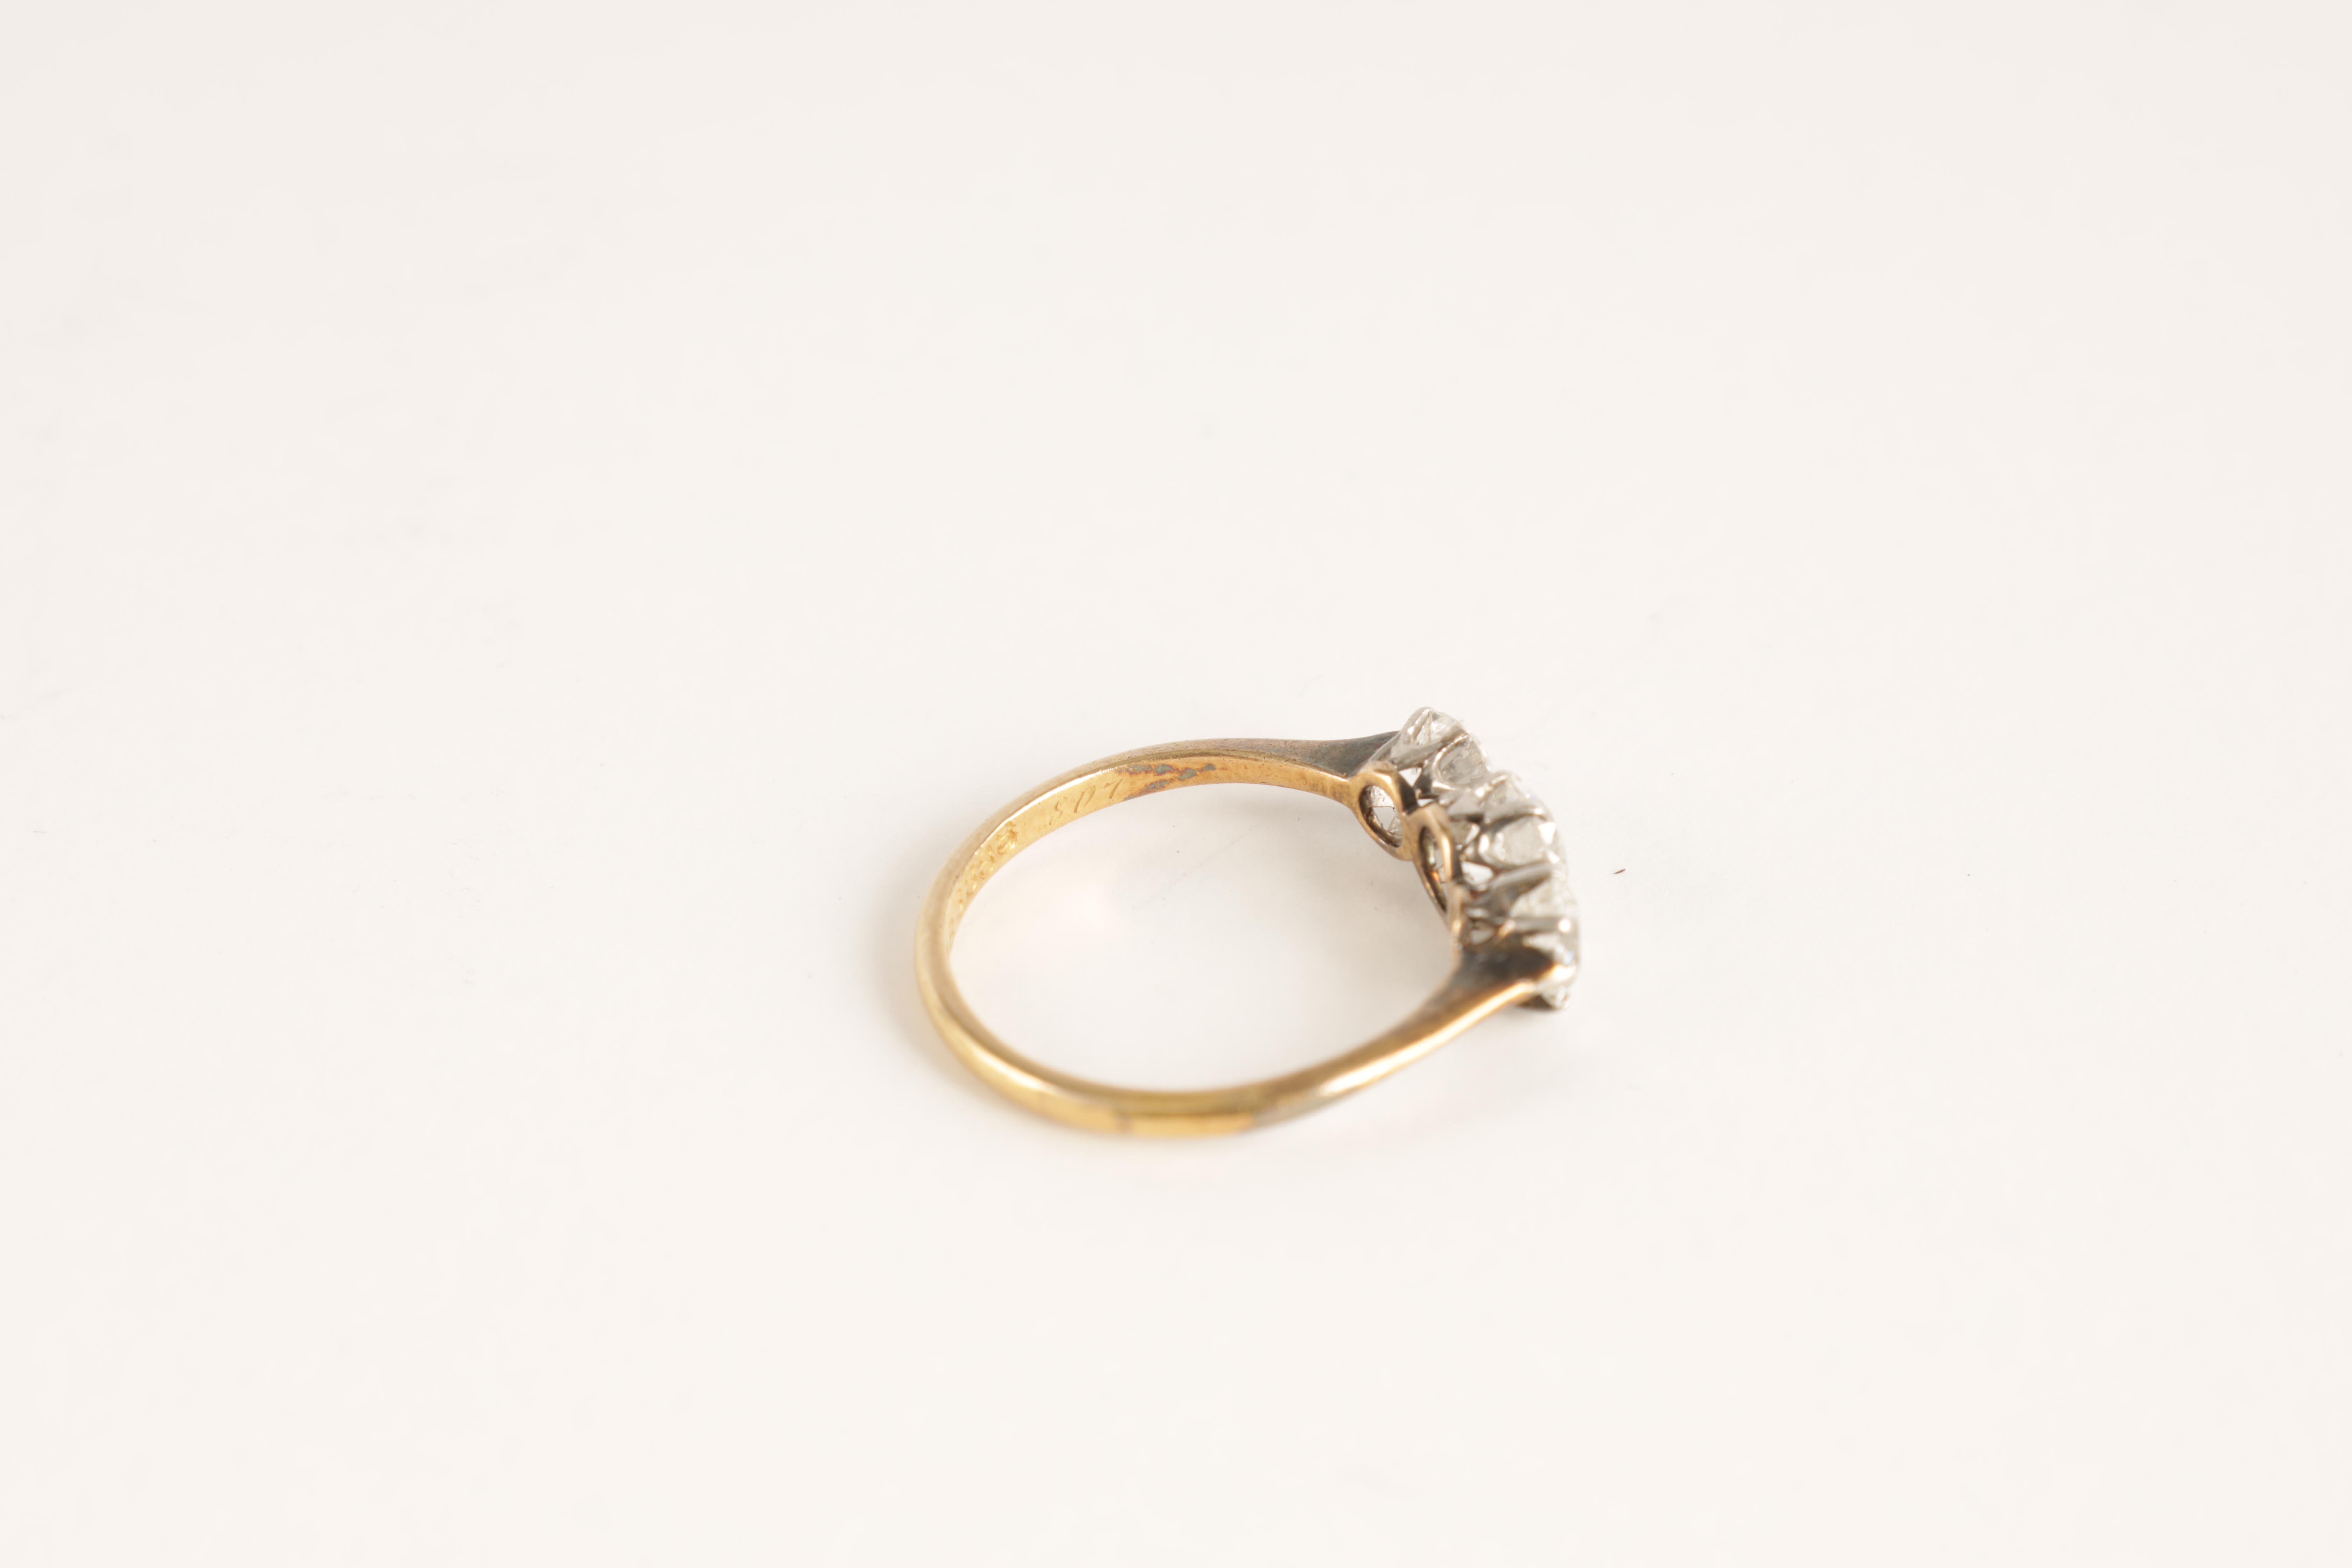 A LADIES THREE STONE DIAMOND RING on an 18ct gold shank, app. 1.2cts. of diamonds, clarity SI2, - Image 3 of 5